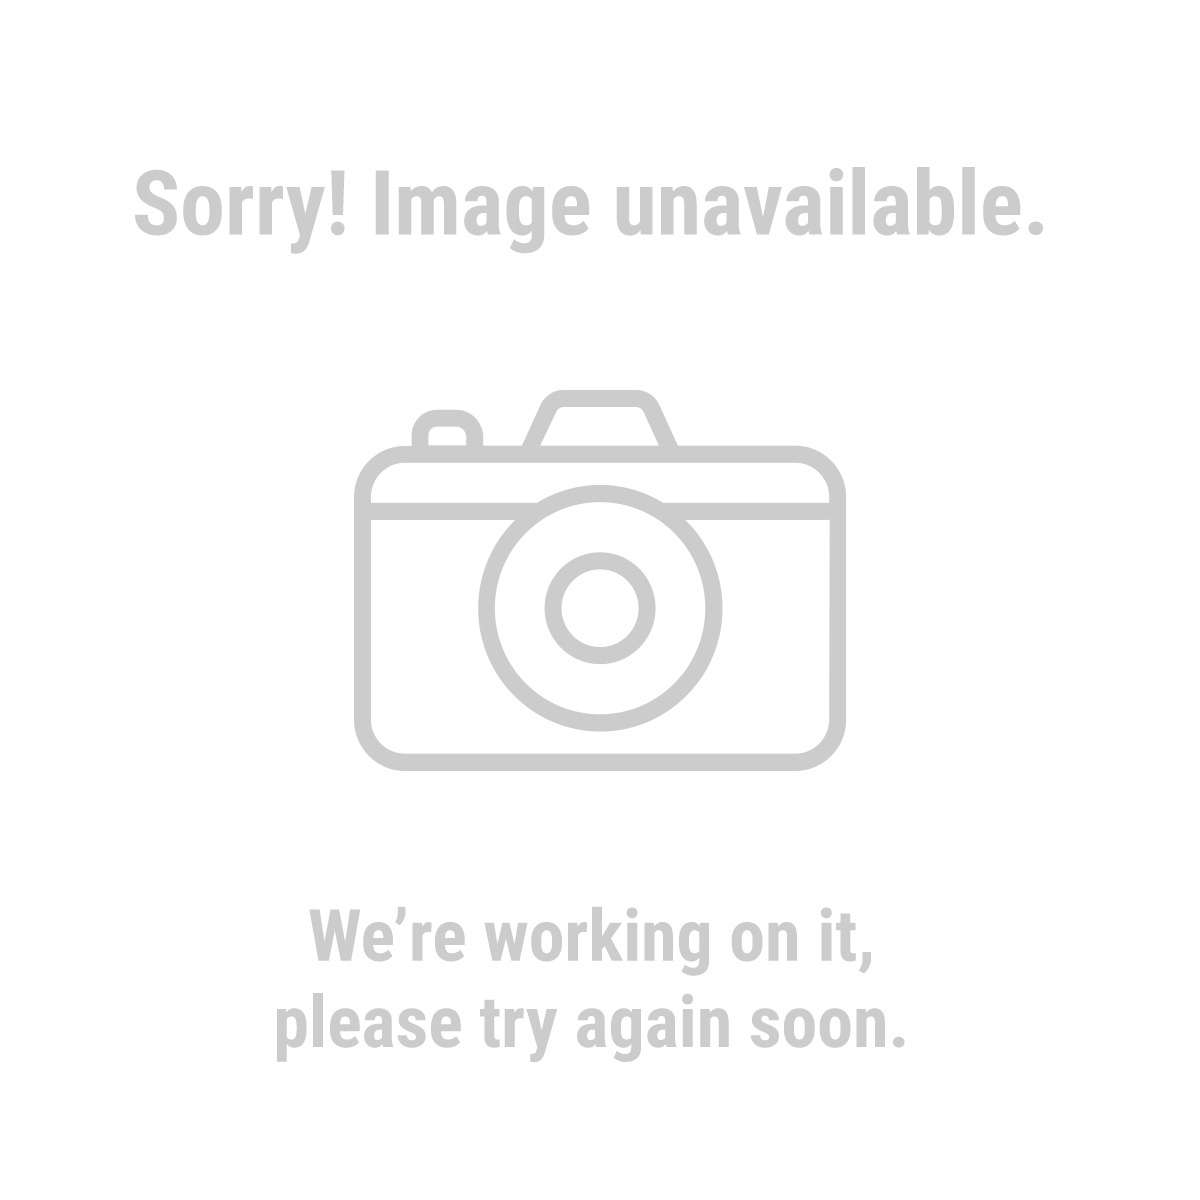 smith jones electric motors 2015 personal blog